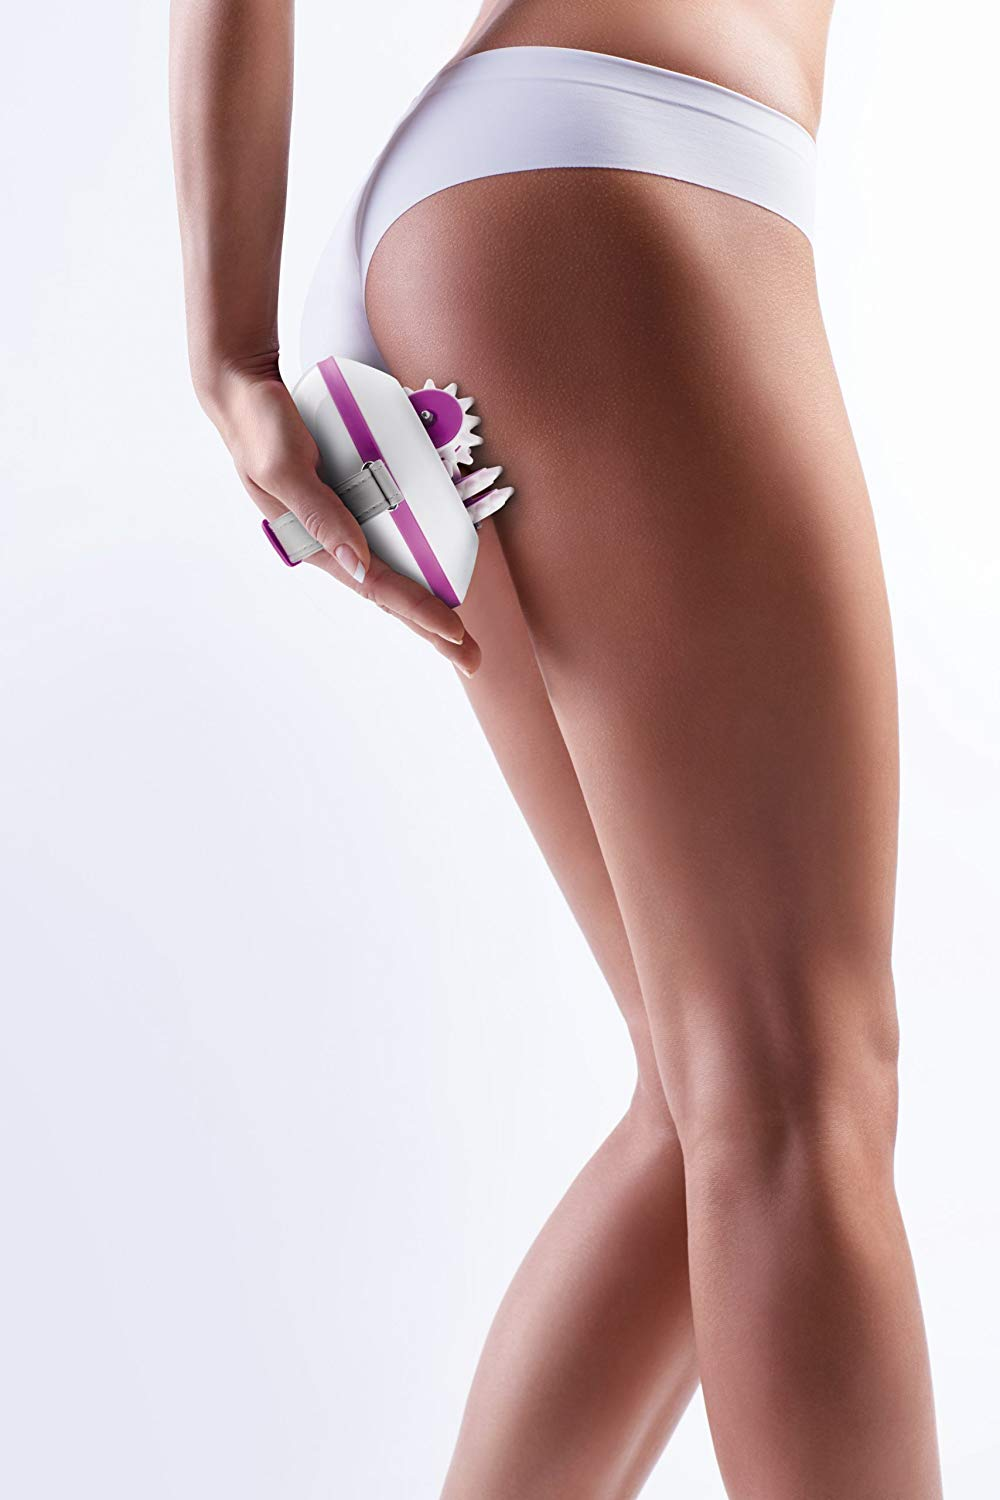 The best cellulite massager